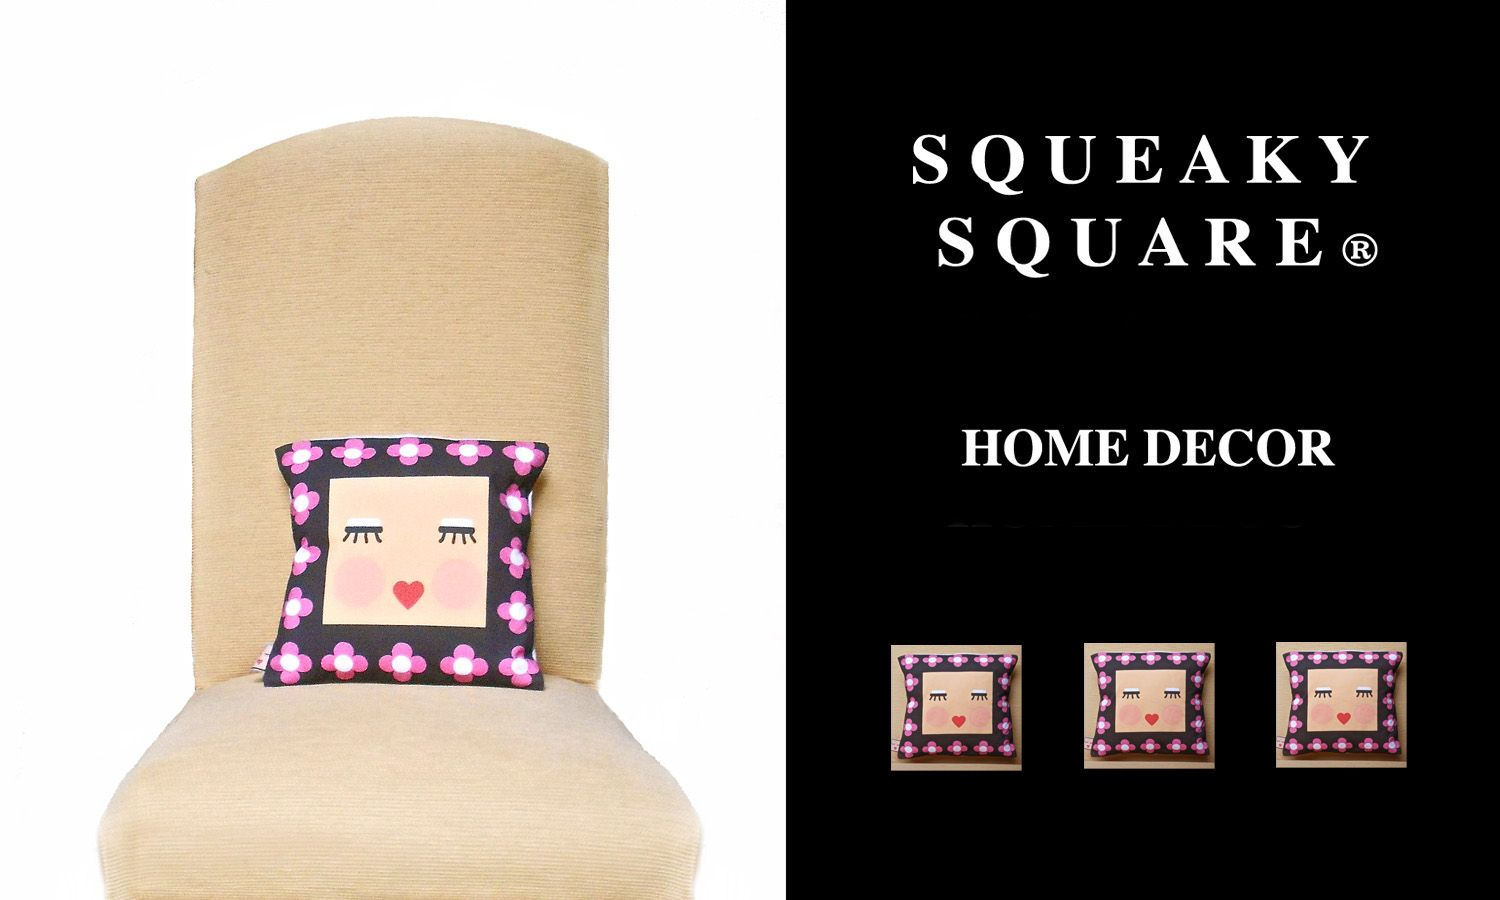 HOME DECOR SQUEAKY SQUARE ? by ele petti Pinterest